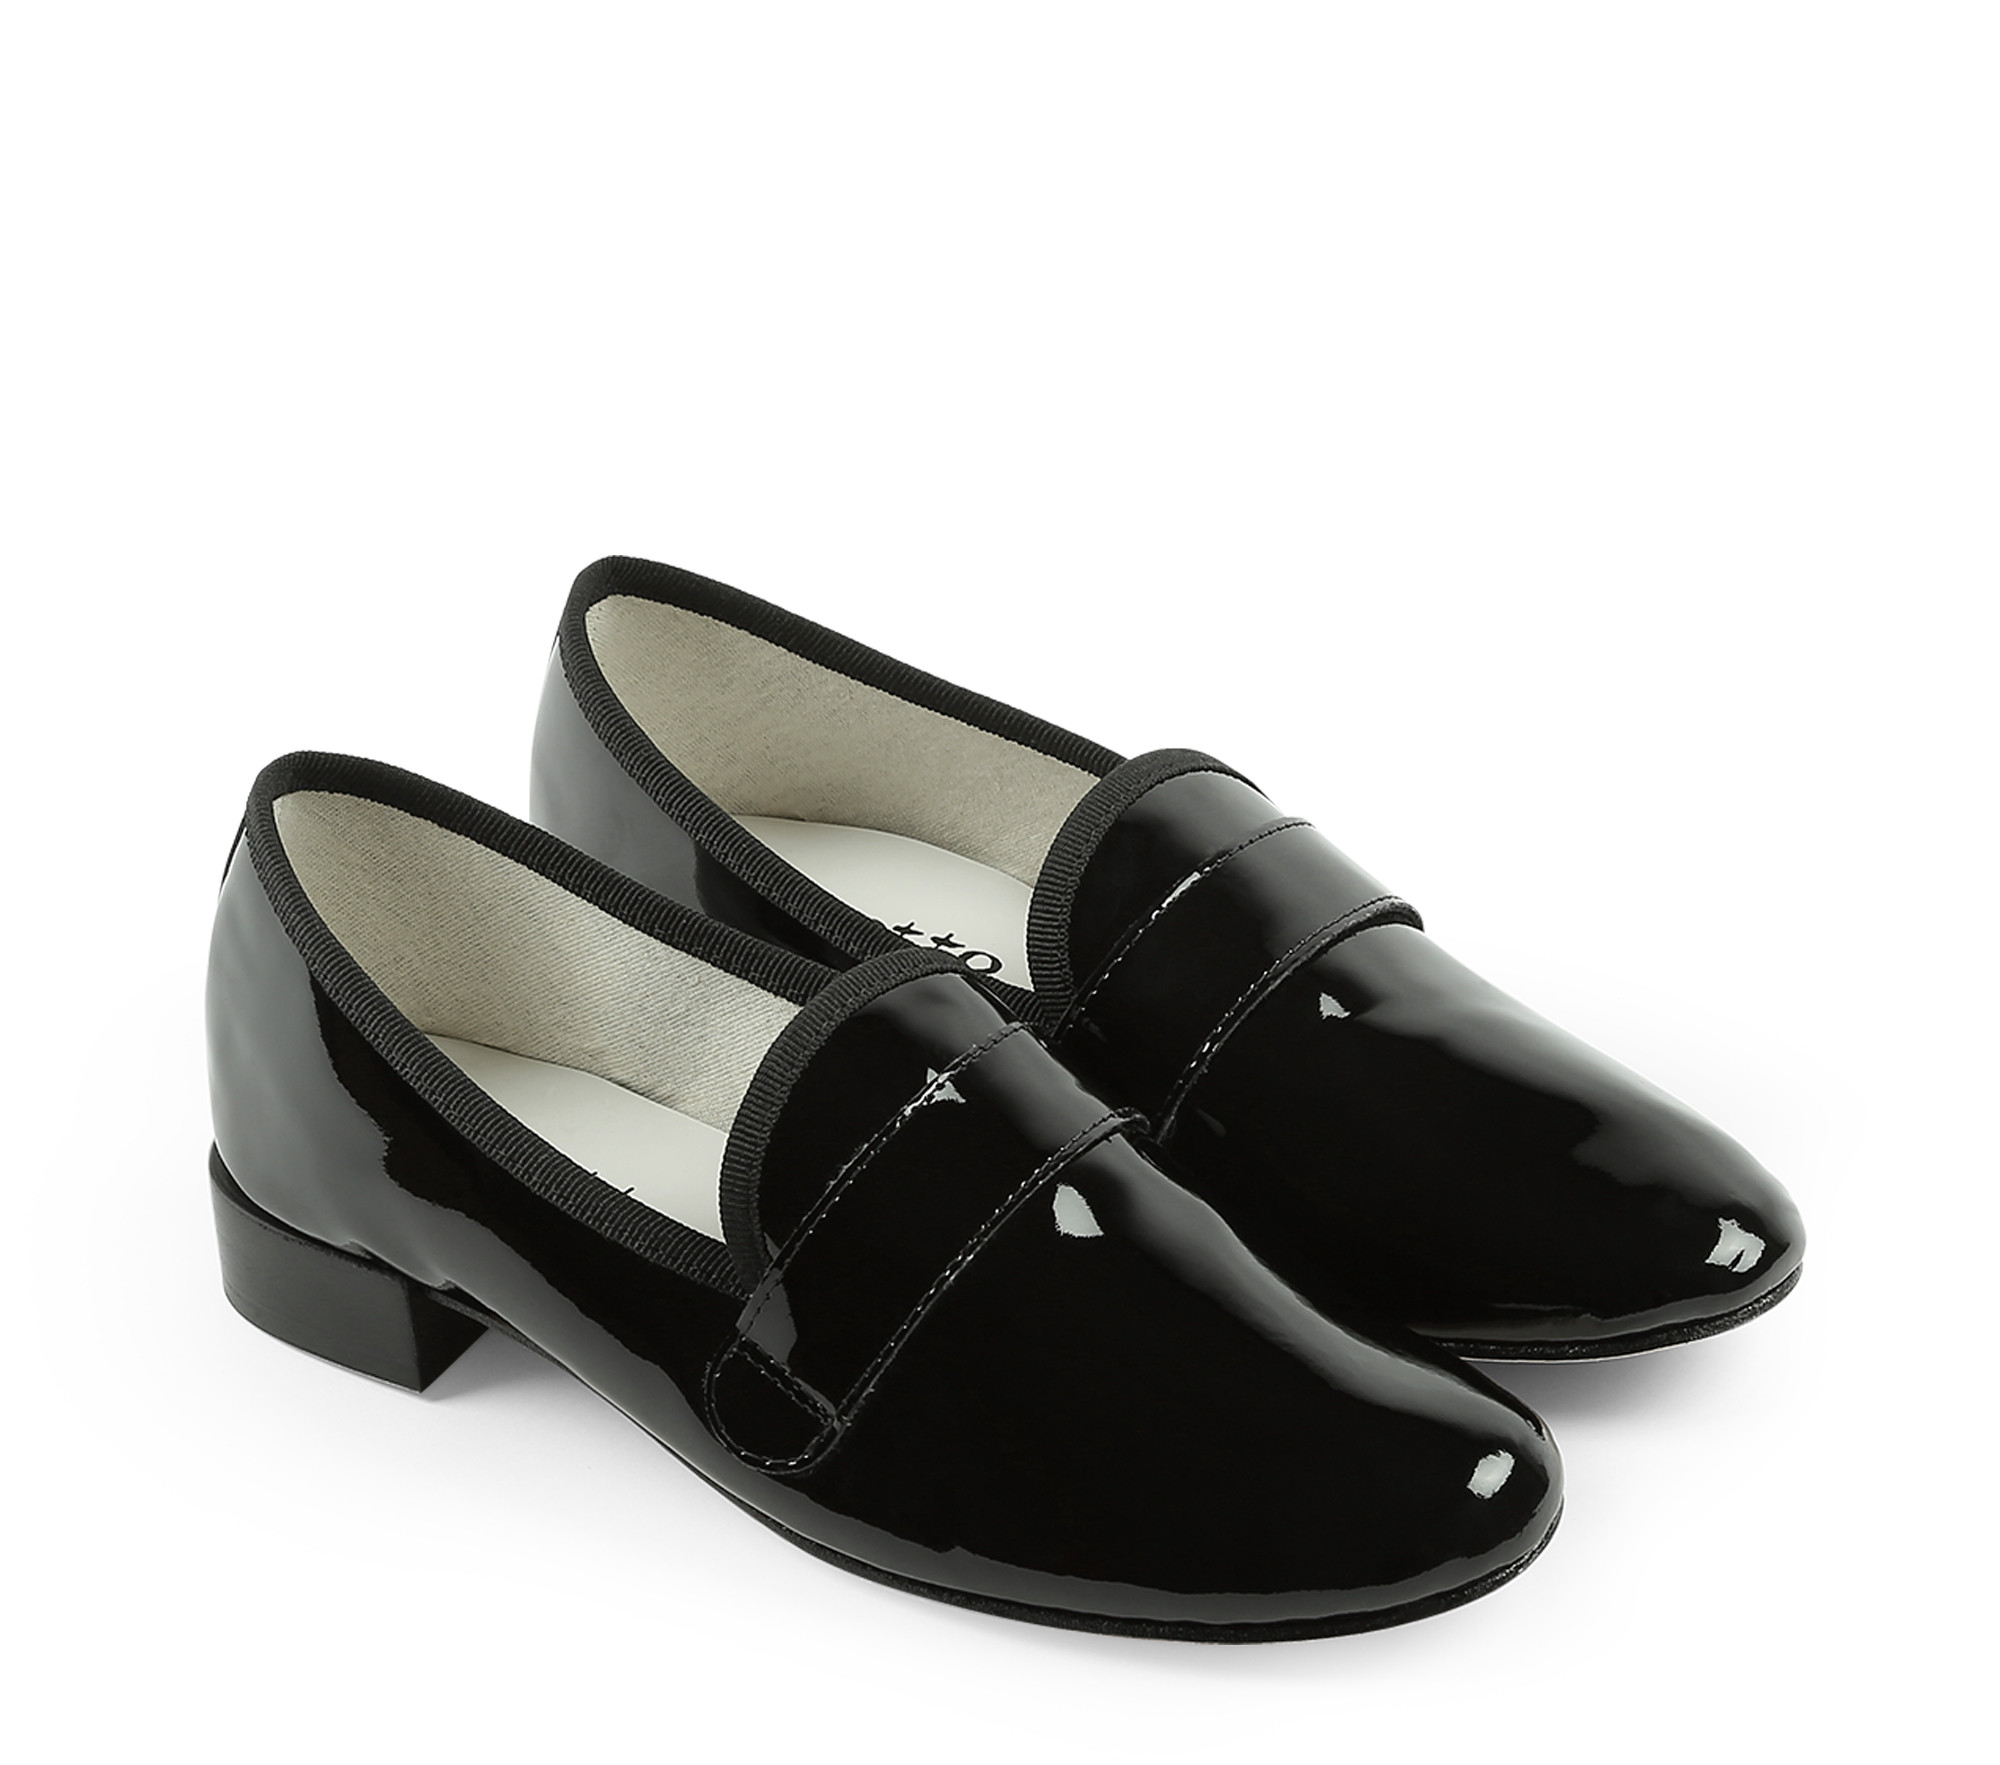 Michael loafers